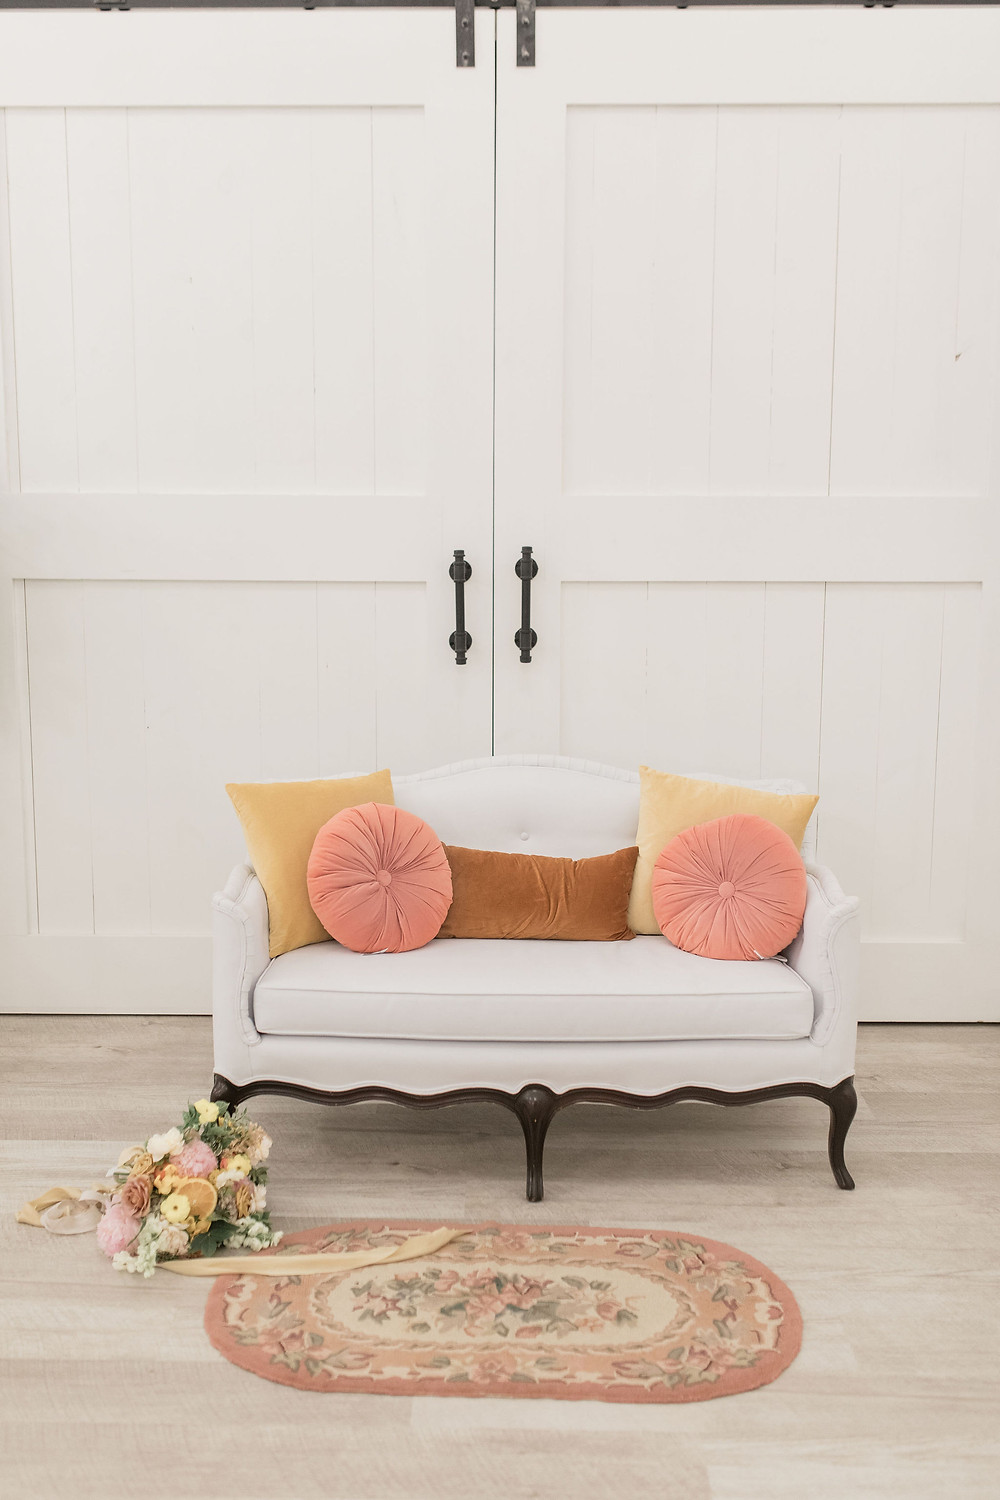 white lounge seating accented with apricot, butterscotch and caramel colored pillows